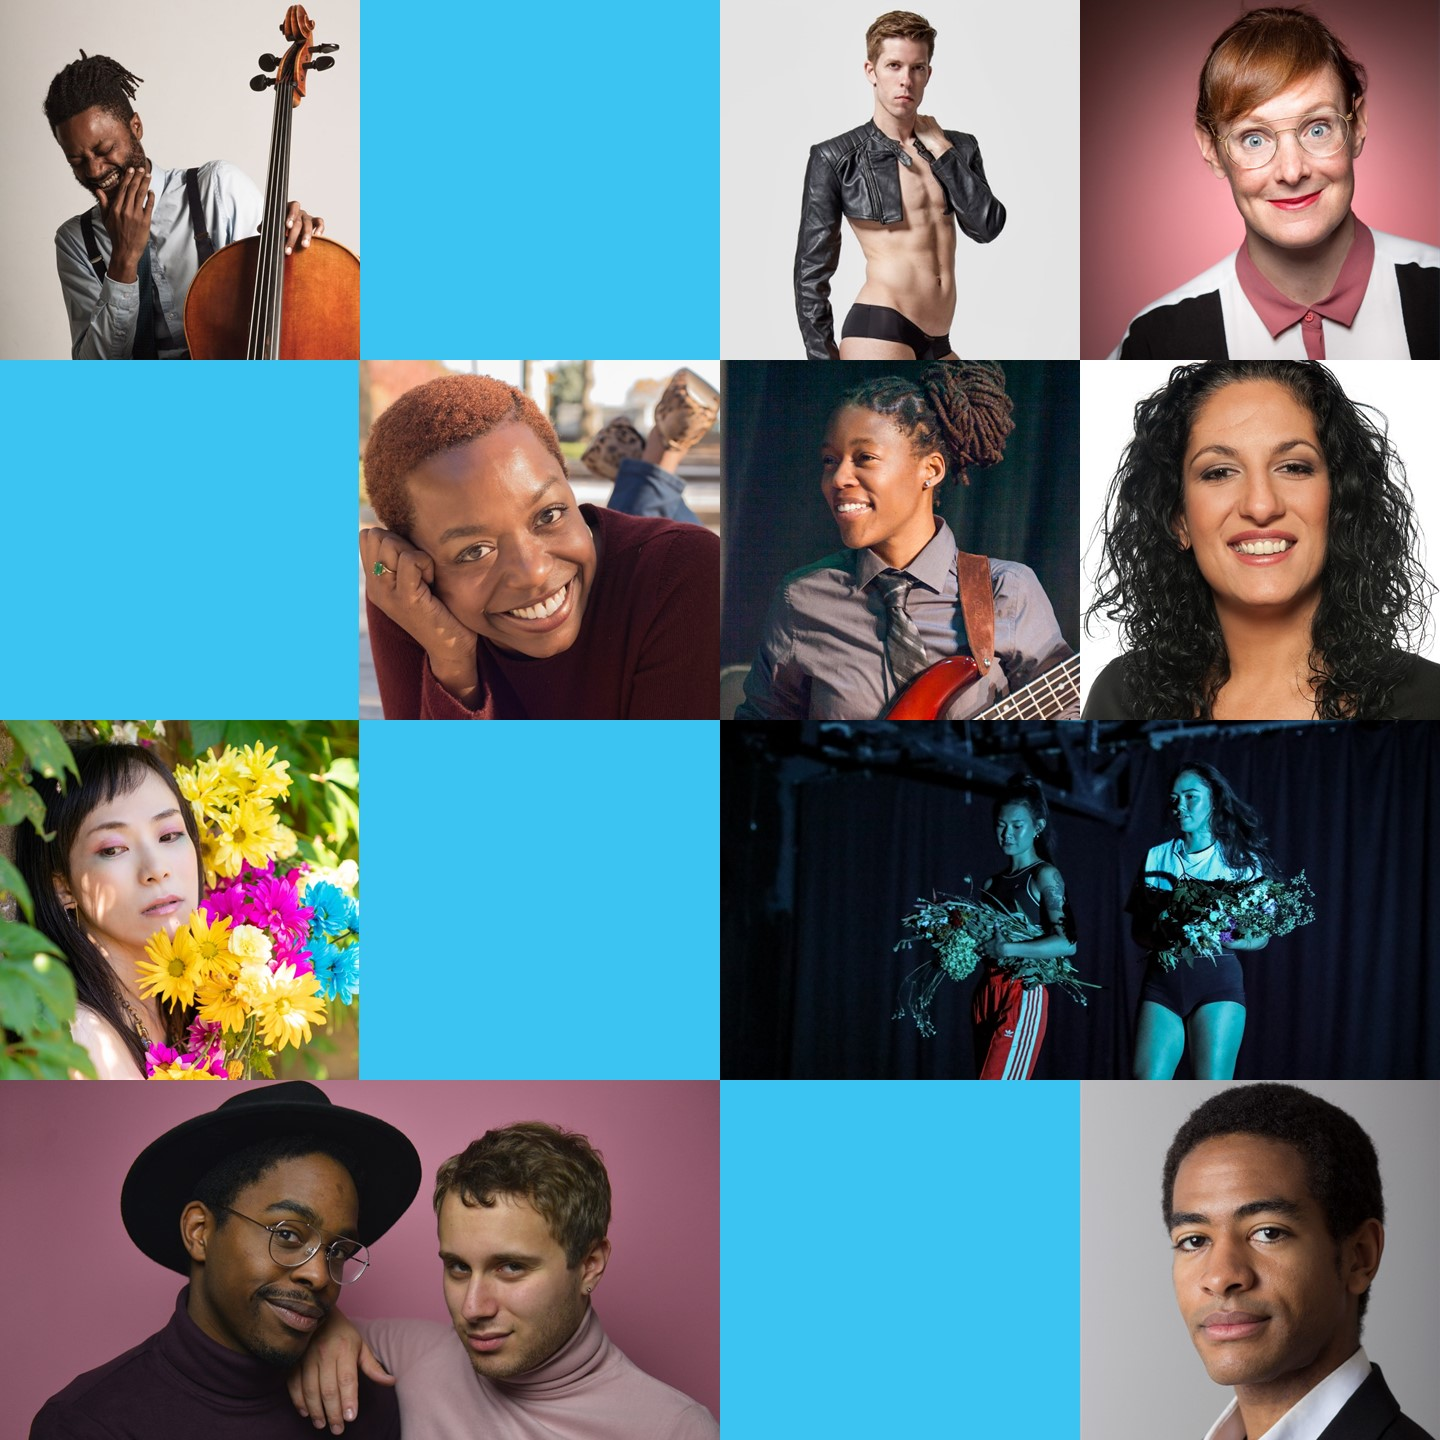 October 19 & 20, 2018   Hosted by Dara Jemmott  FEATURING: Fab the Duo (Power Couple Pop) Jess Salomon & Eman El-Husseini (Comedians) Kristine Haruna Lee & Jen Goma (Spoken Word) Ganessa James (Singer-Songwriter) Malcolm Parson (Cello) Twinky Boots (Burlesque) Shihori (Singer-Songwriter) Josh Henderson (Classical Violin)